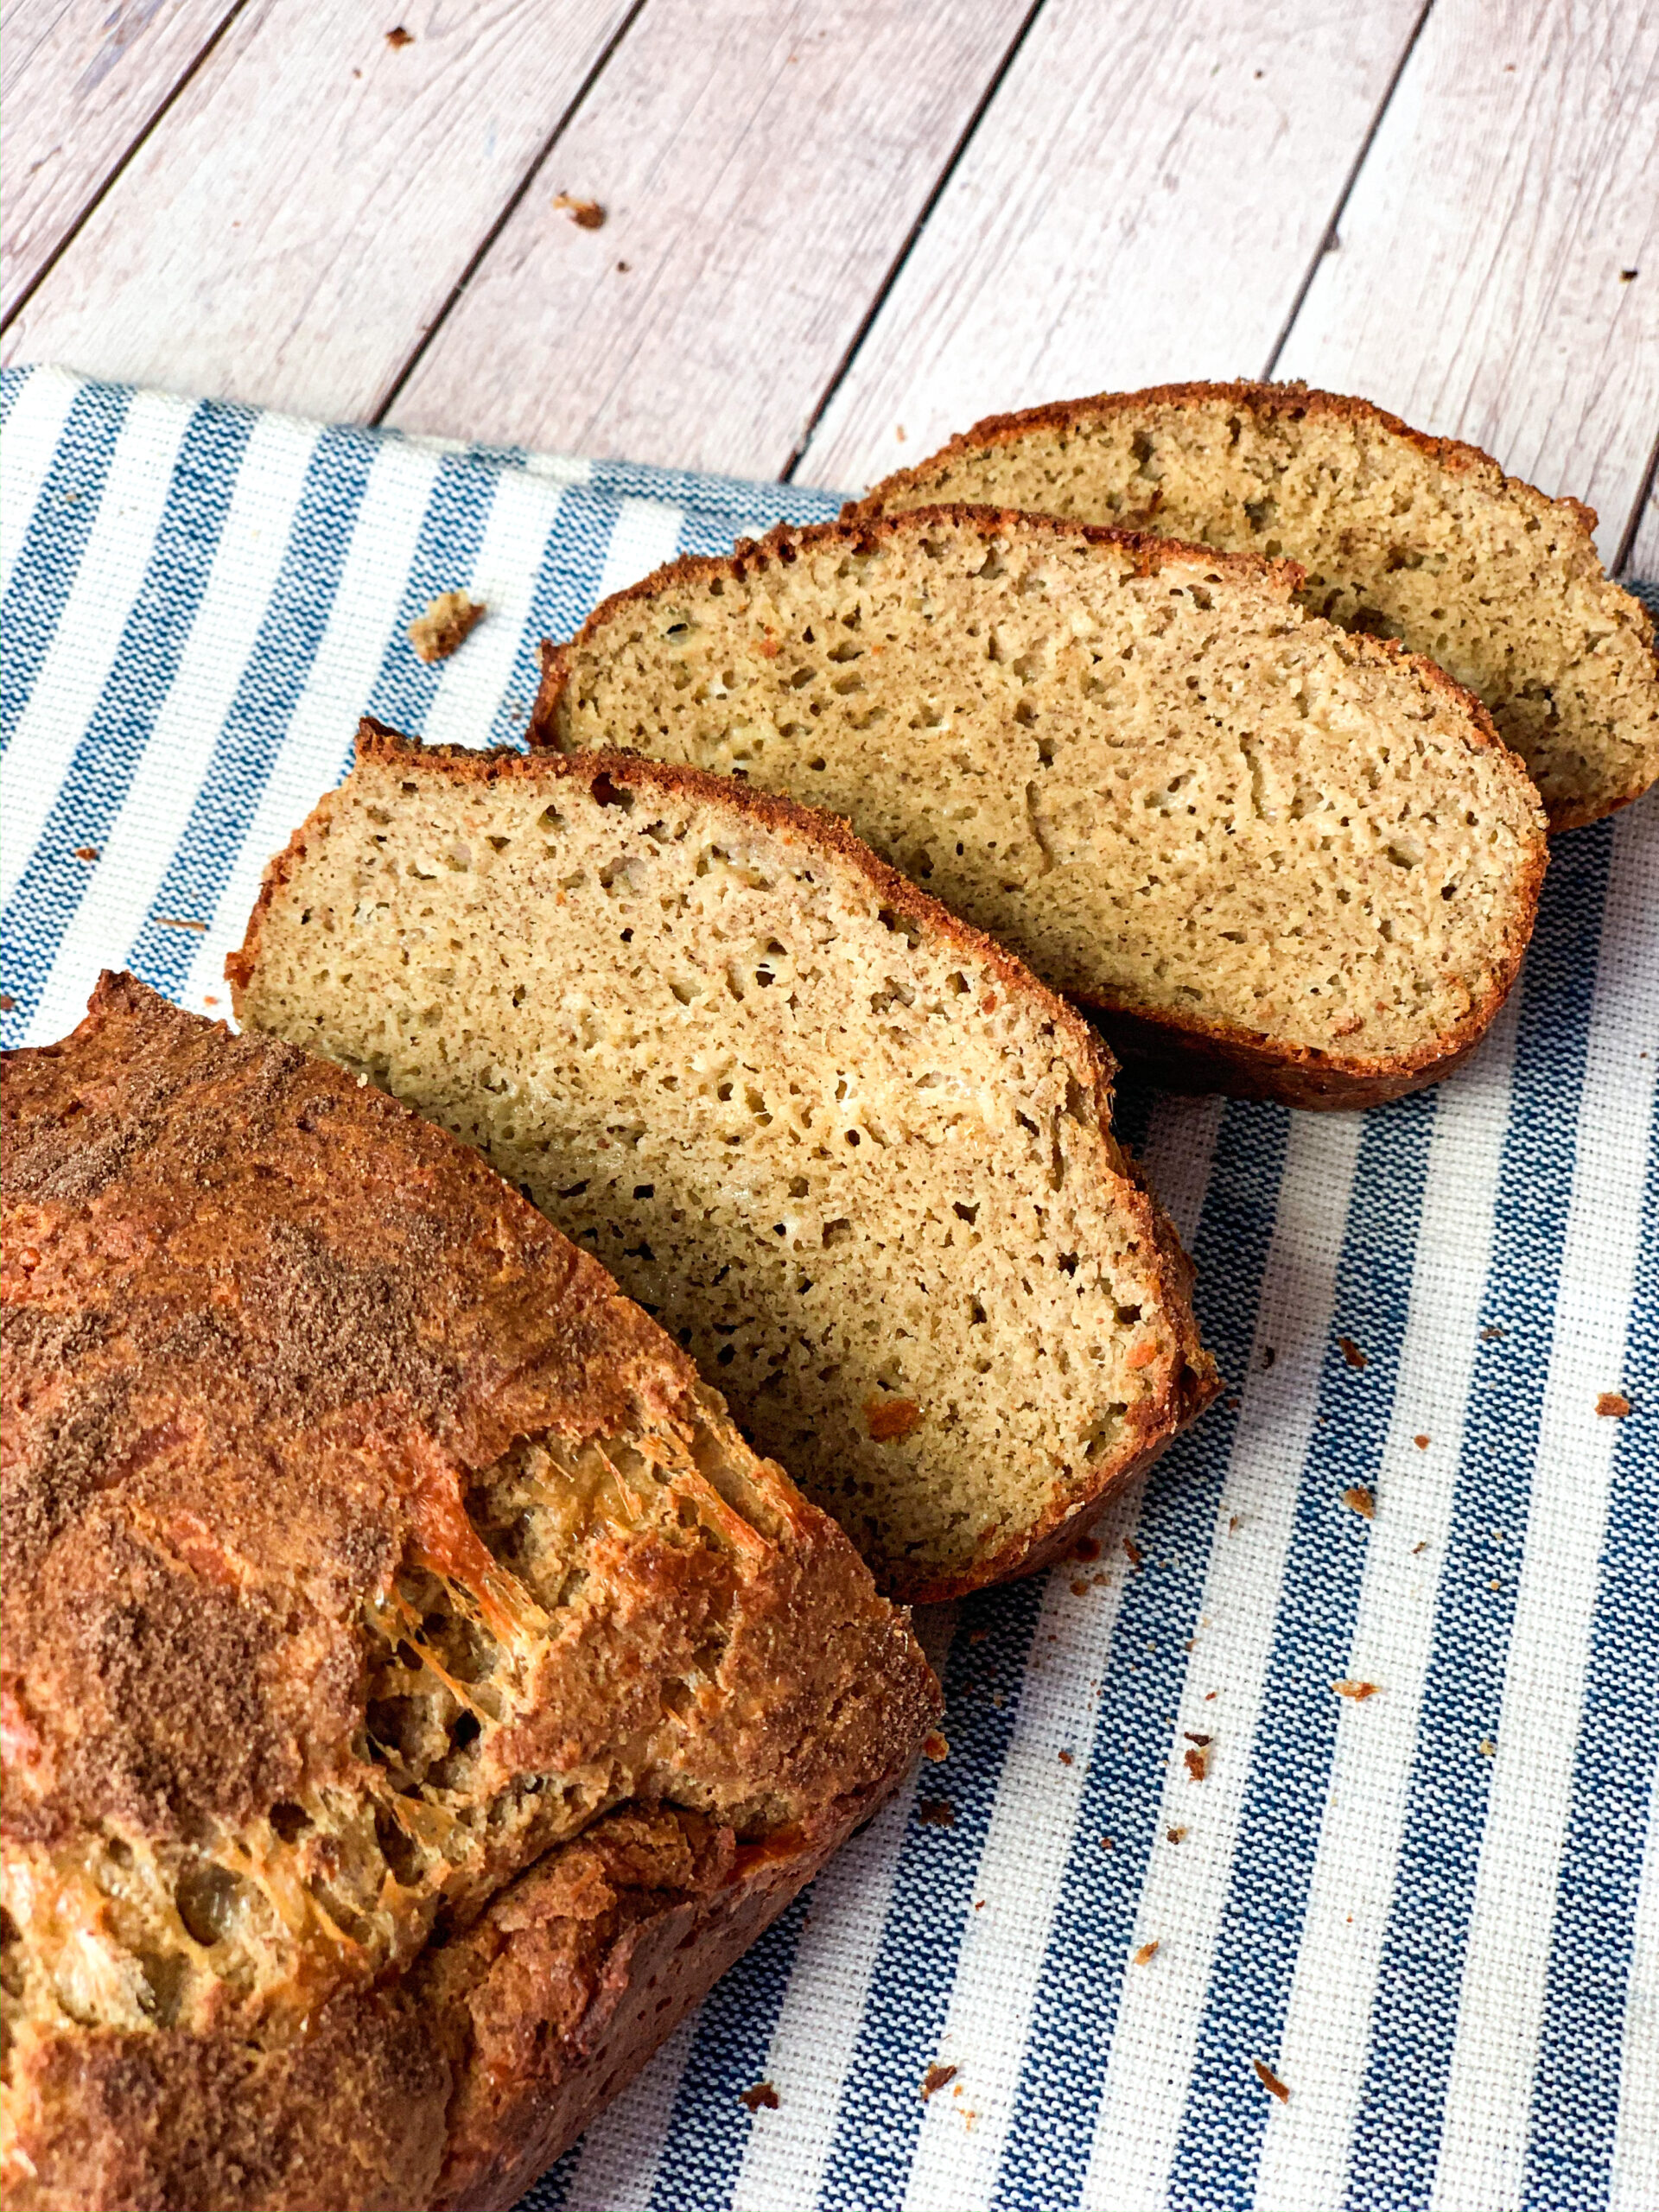 Low carb sandwich bread with yeast on the table